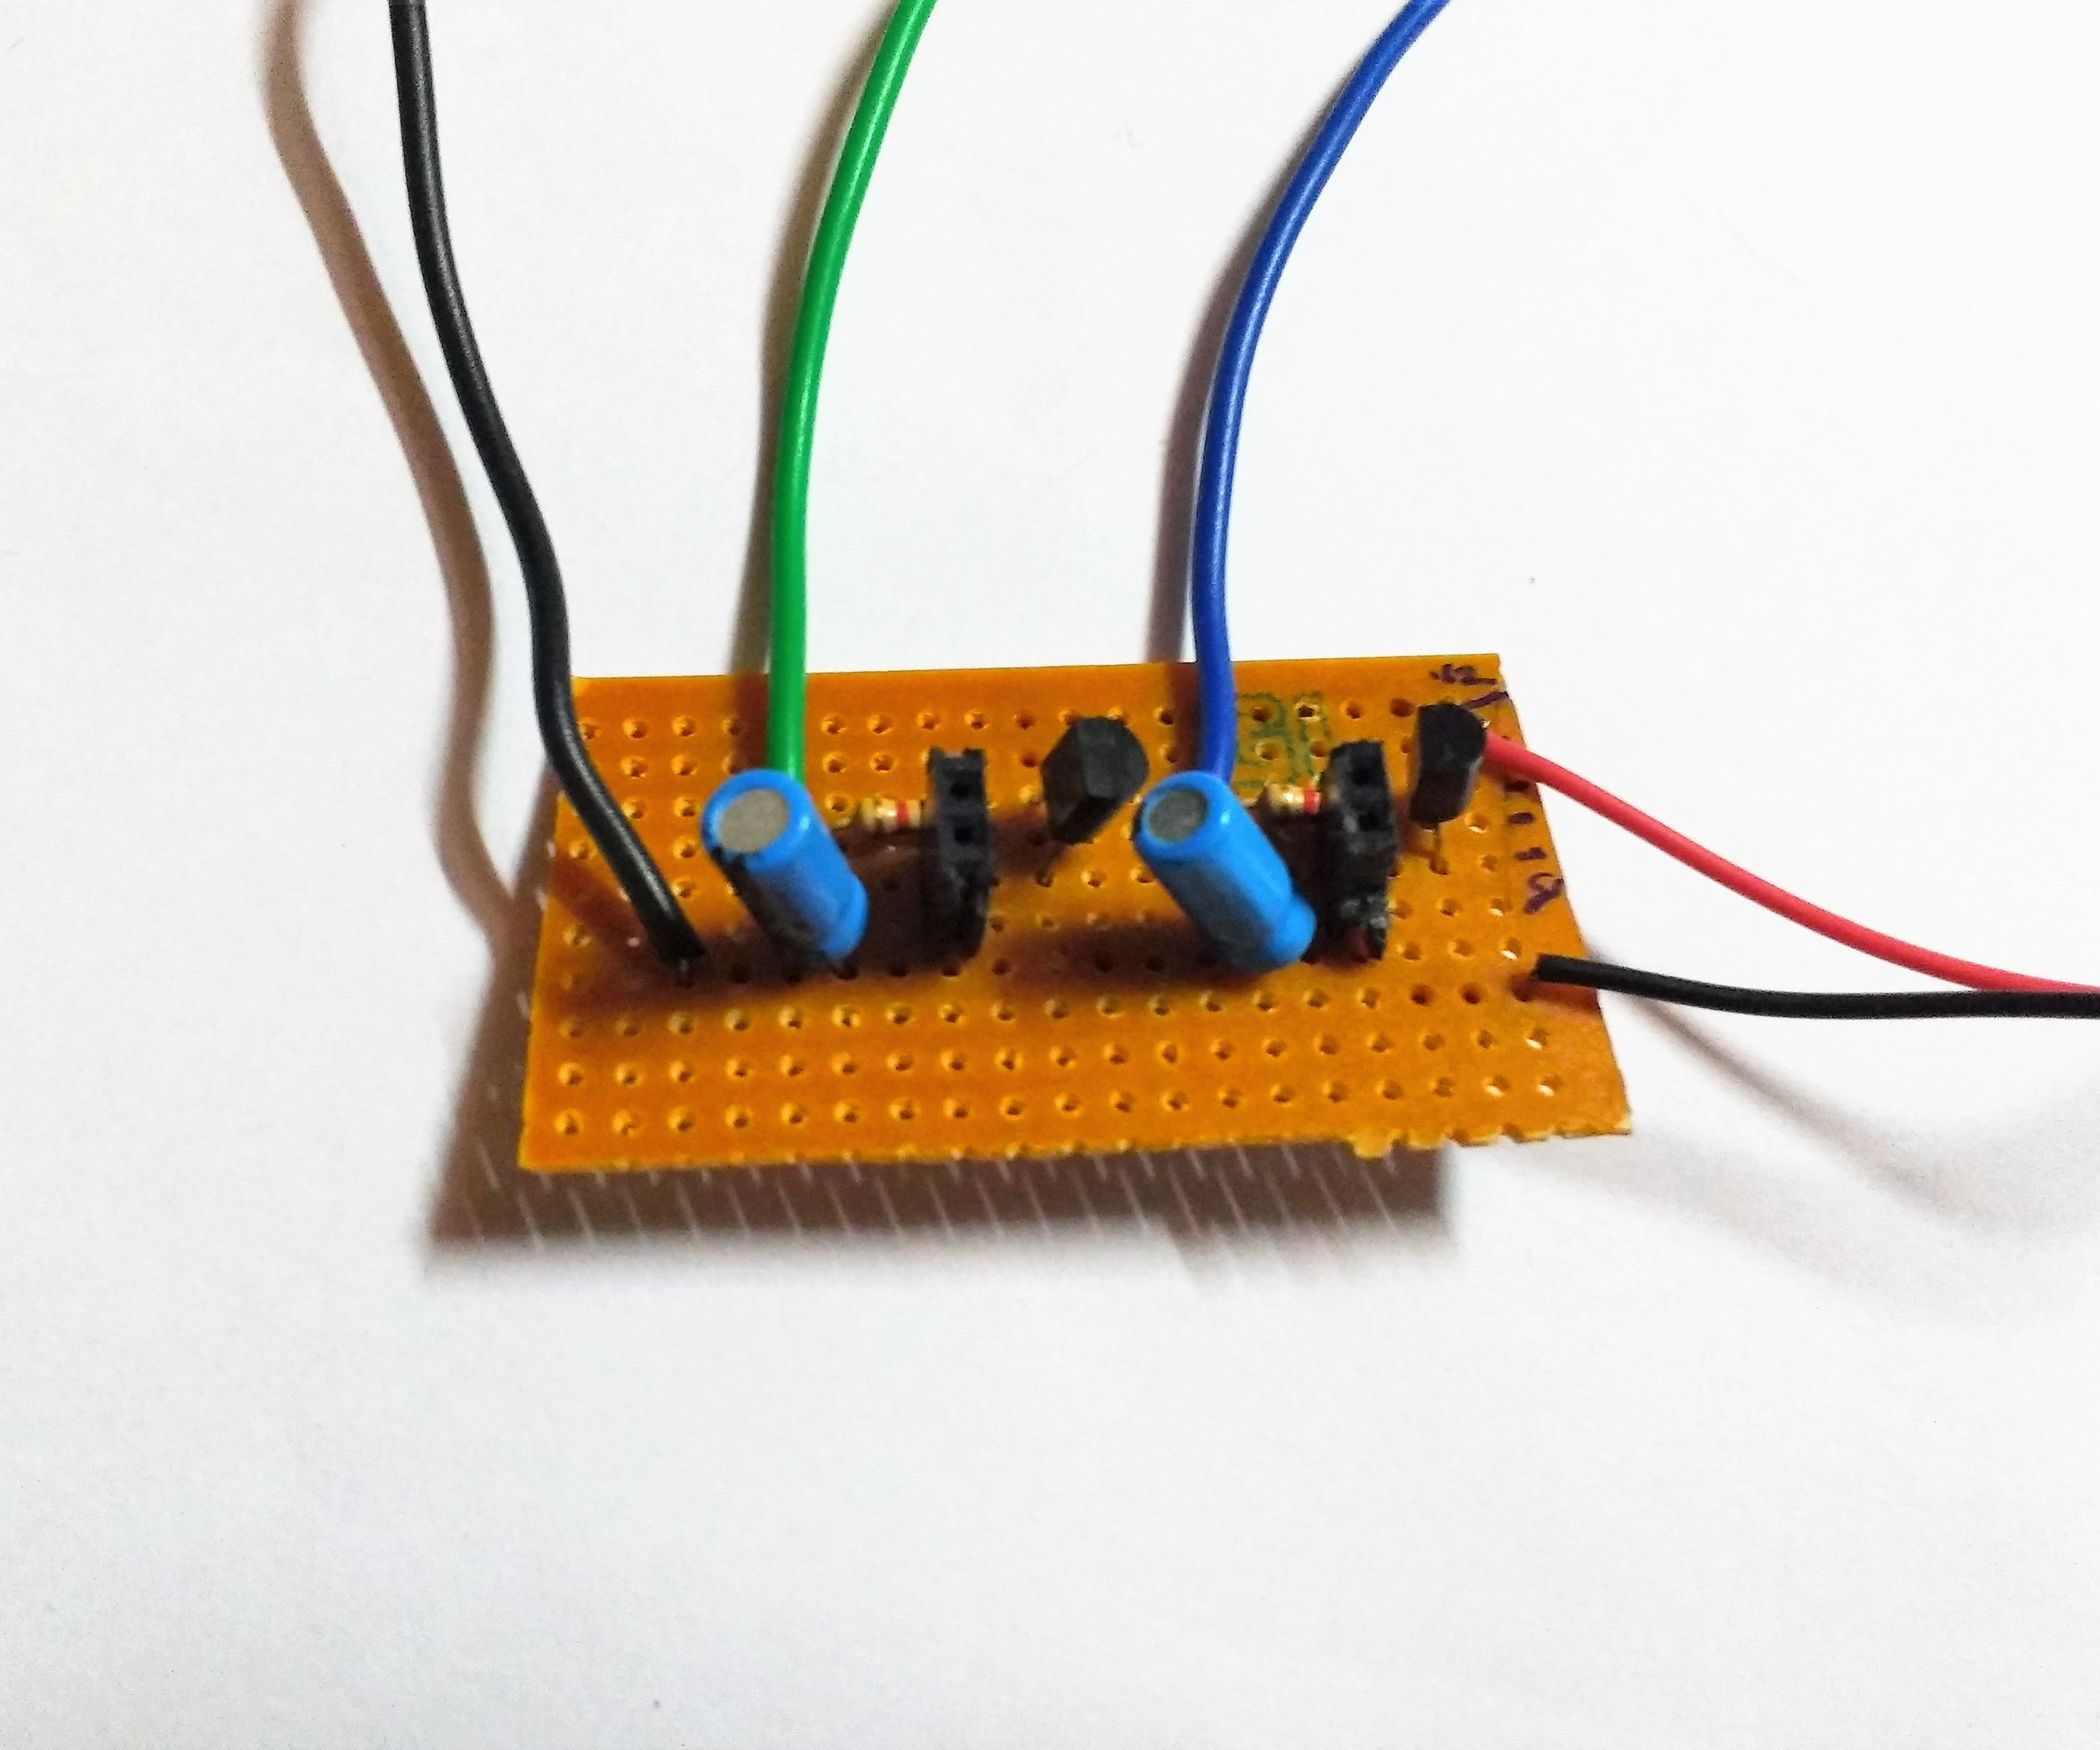 Simple cheap motor driver board for arduino